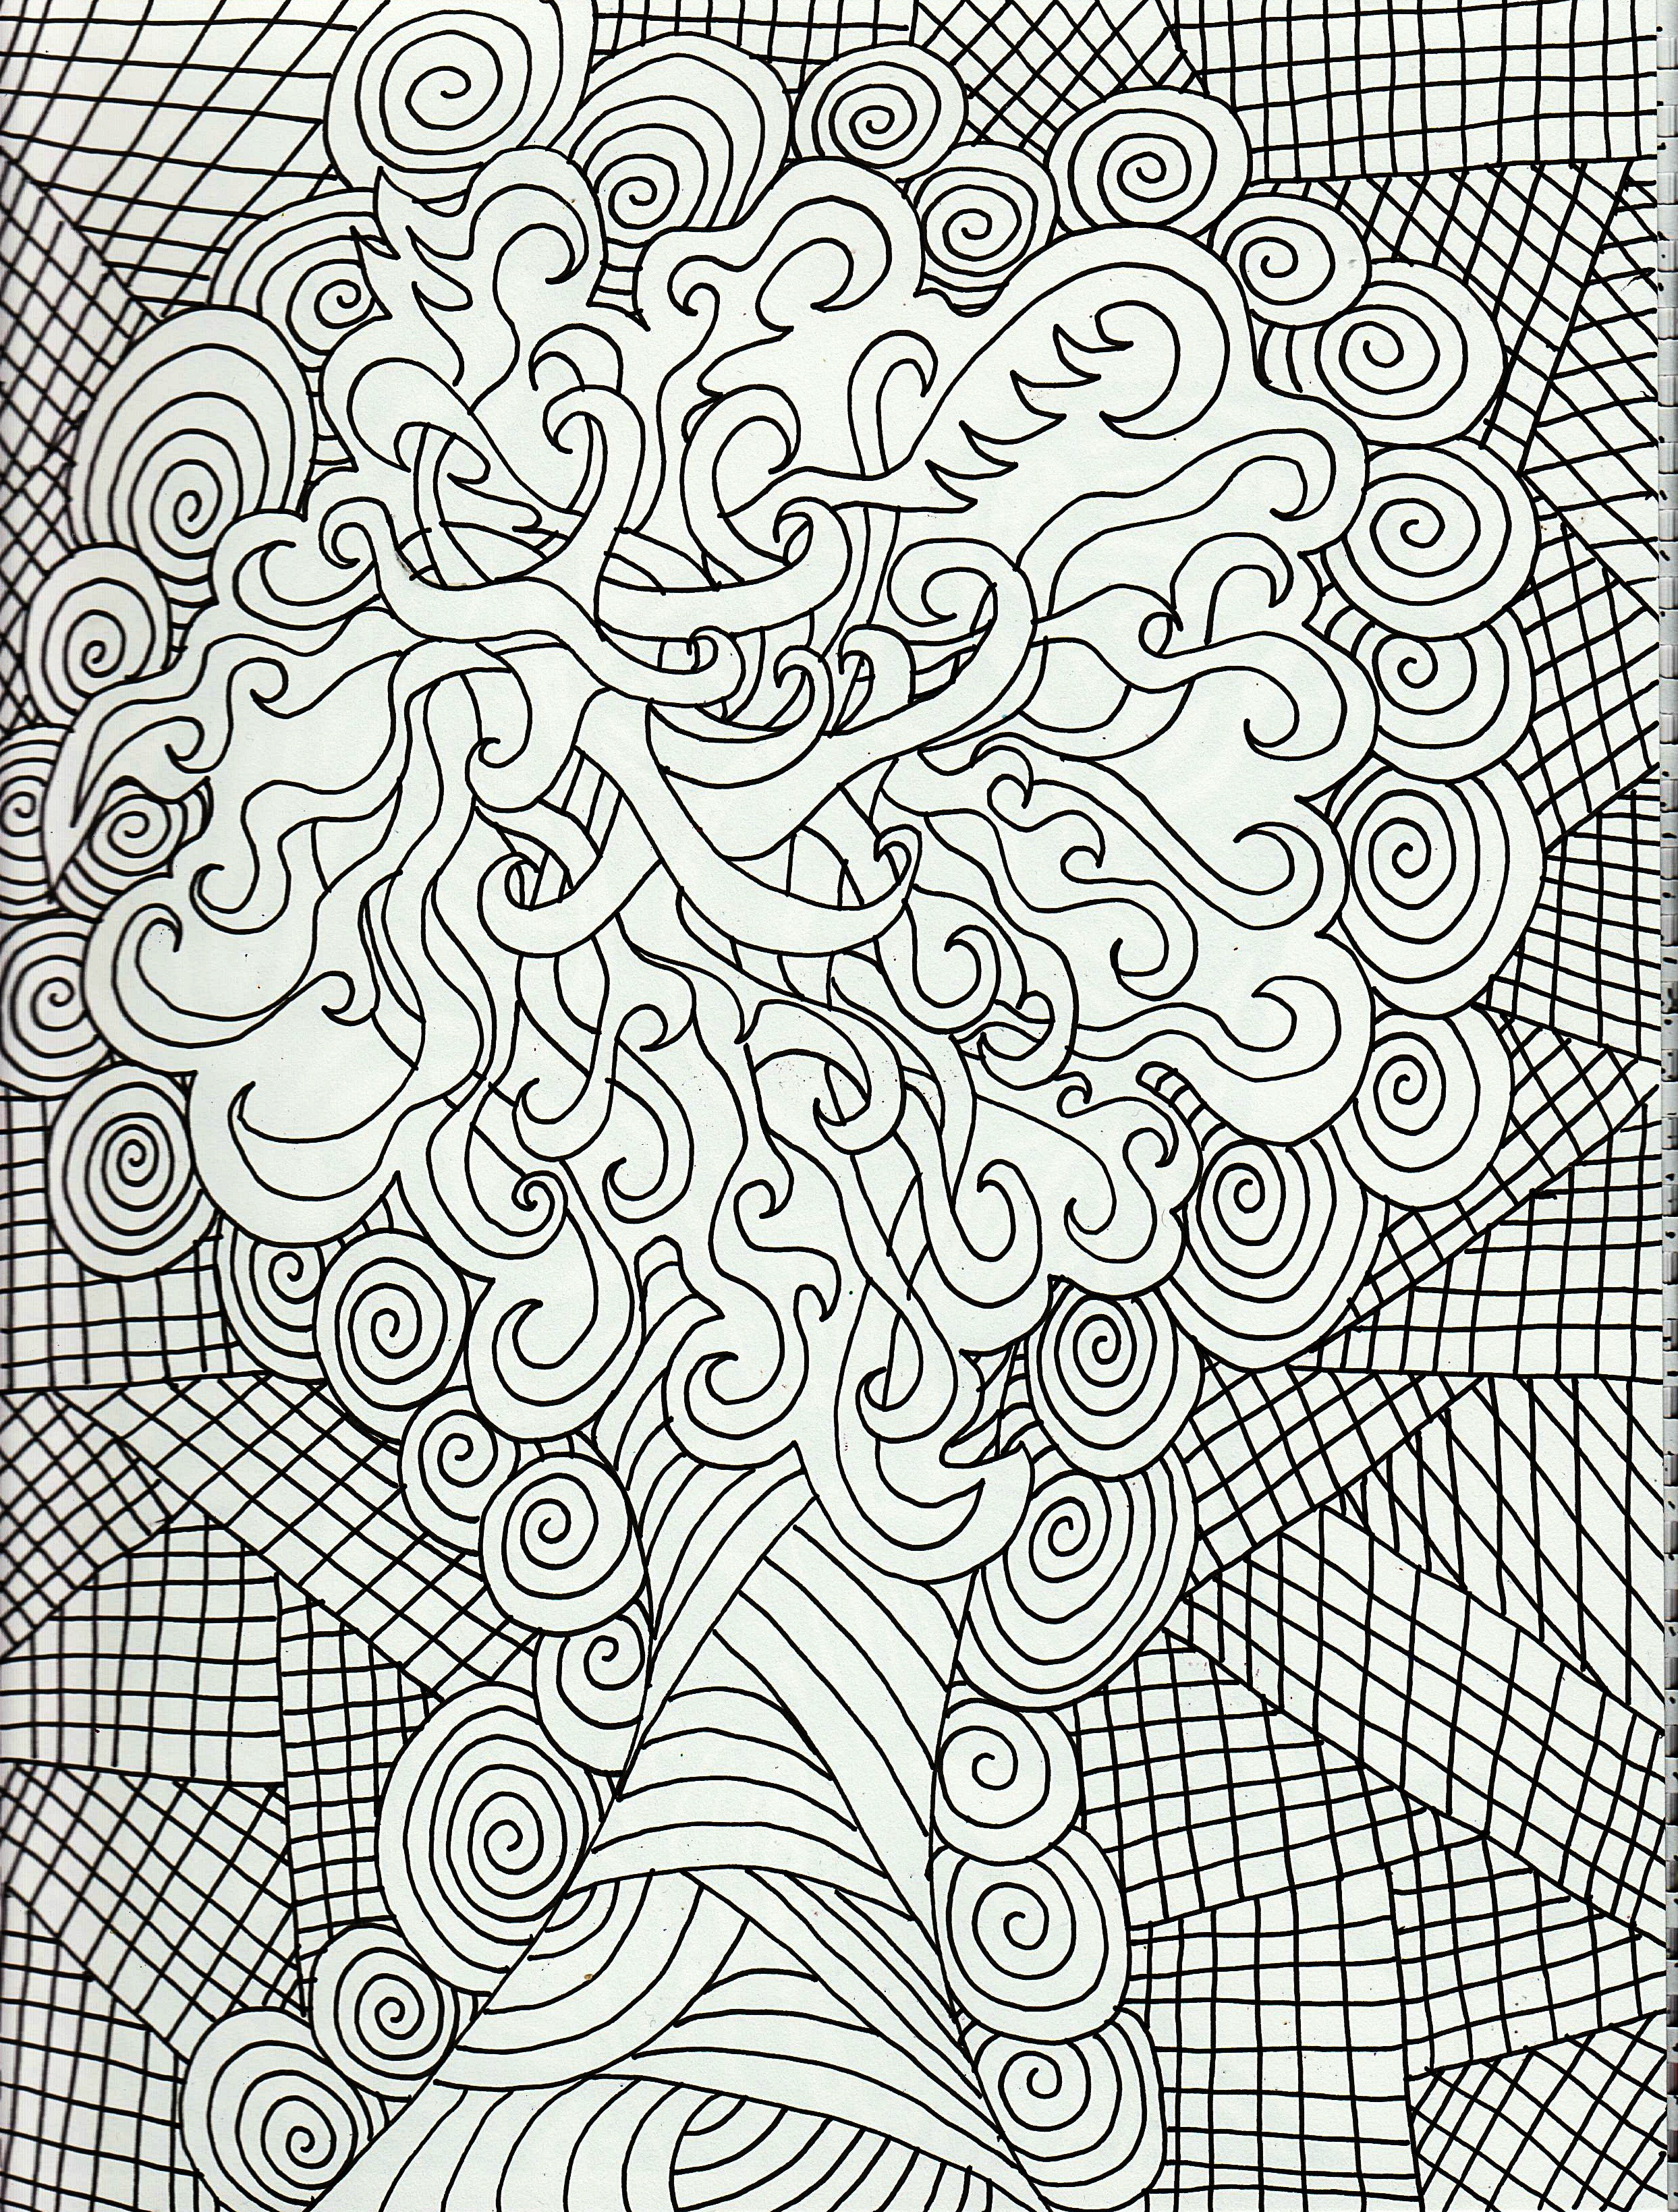 Printable Adult Coloring Books  Free Printable Adult Coloring Pages Awesome Image 30